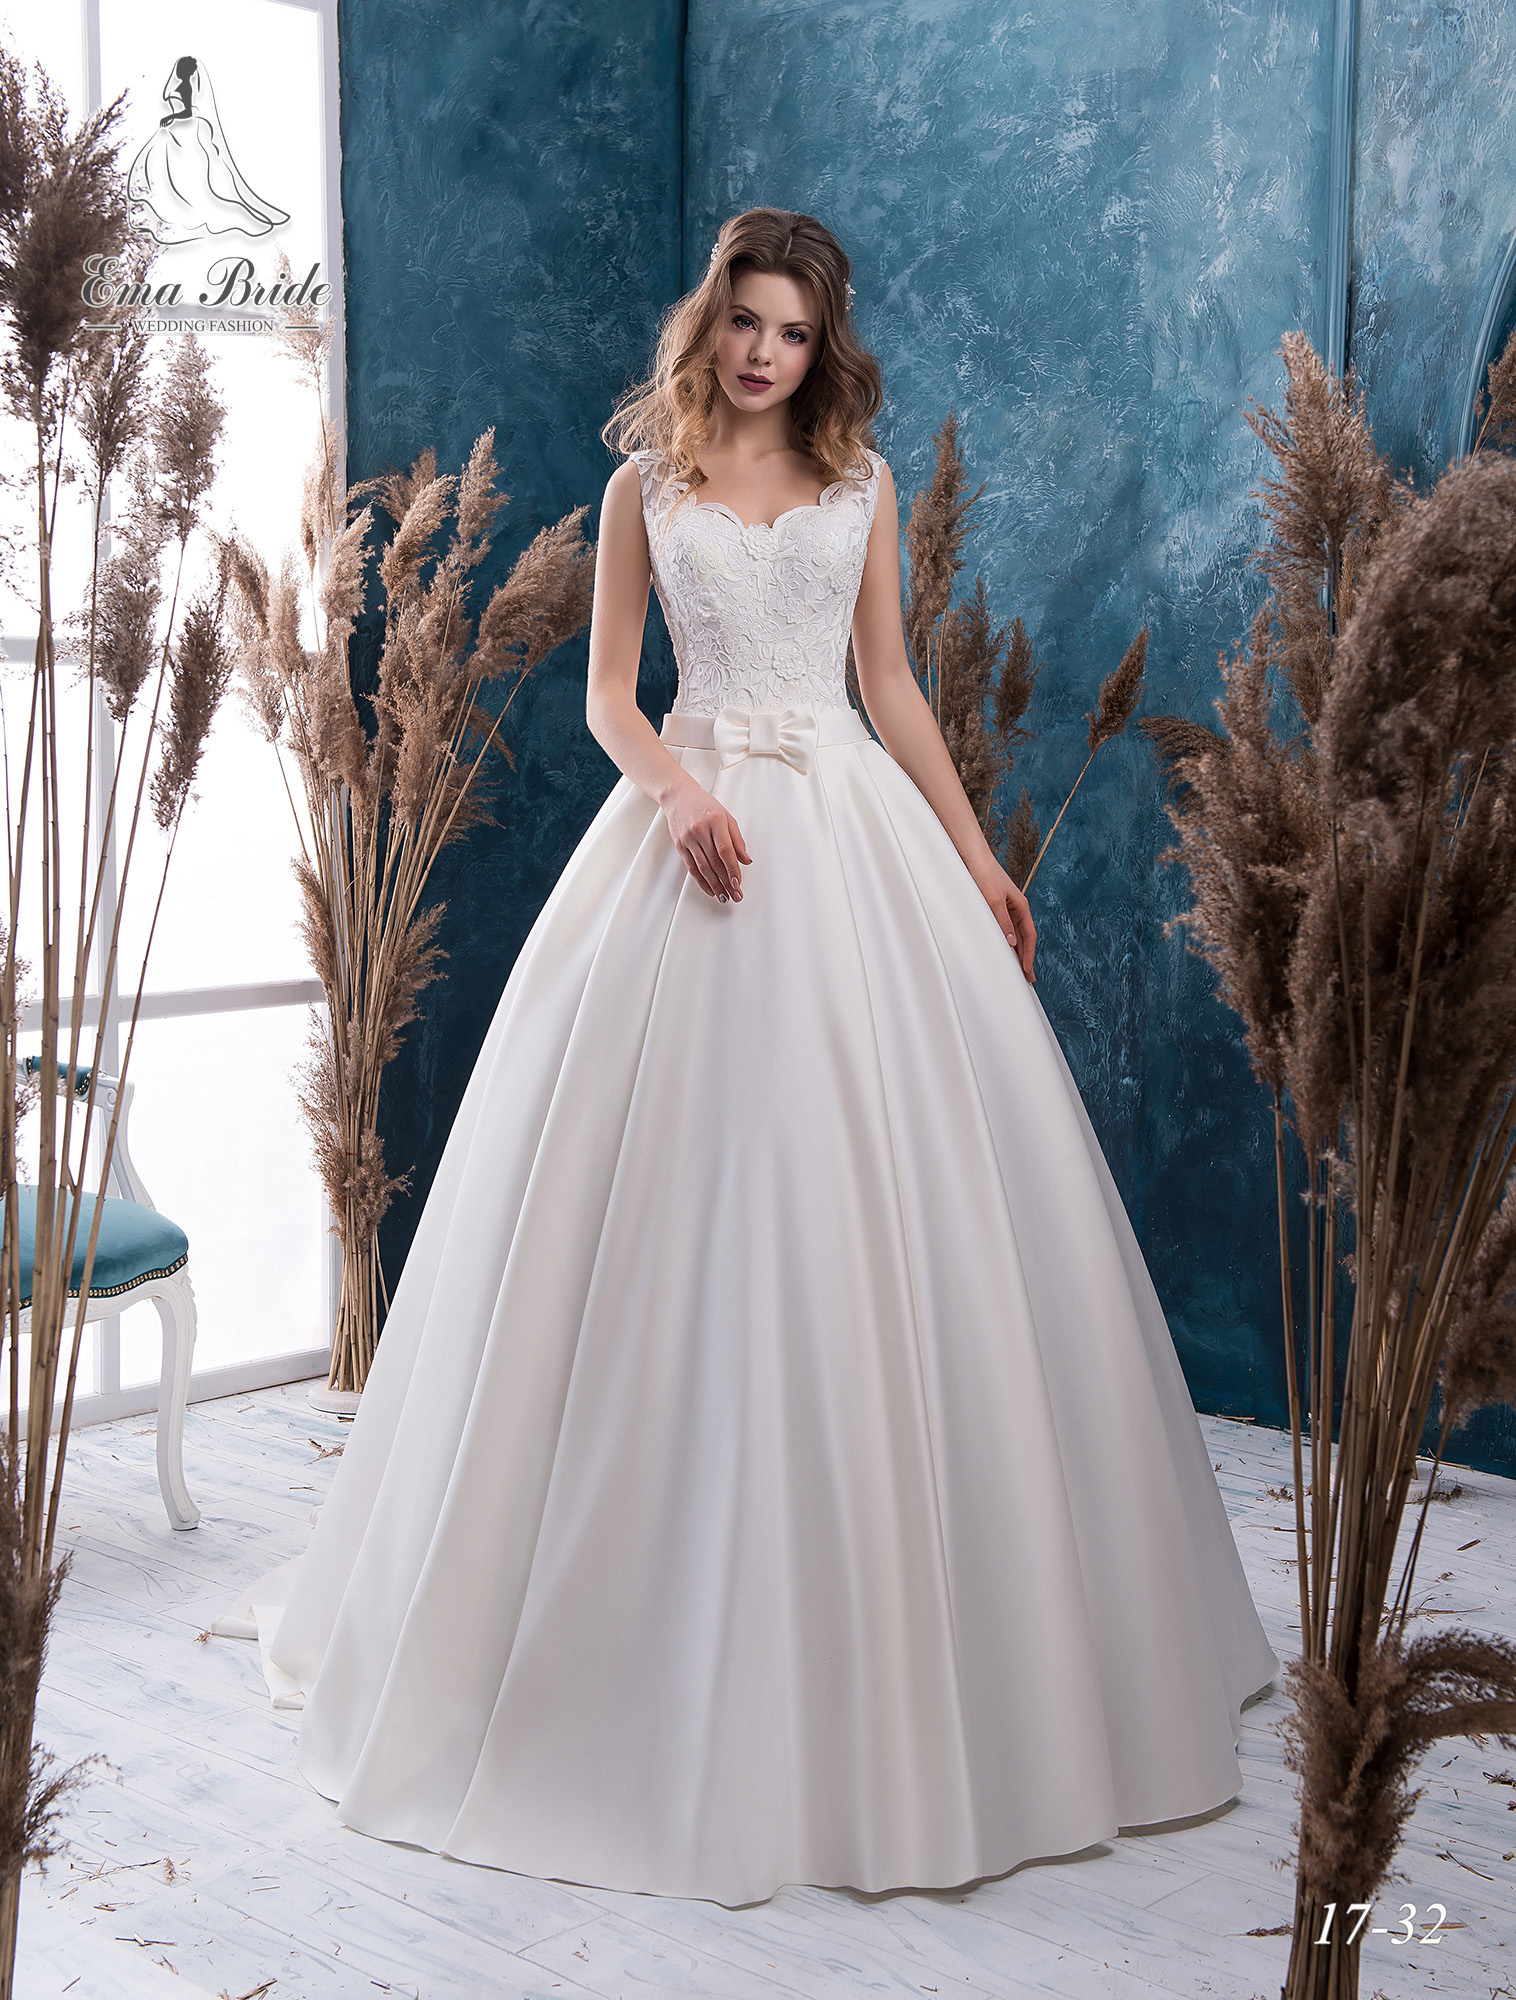 Wedding dress 17-32 wholesale